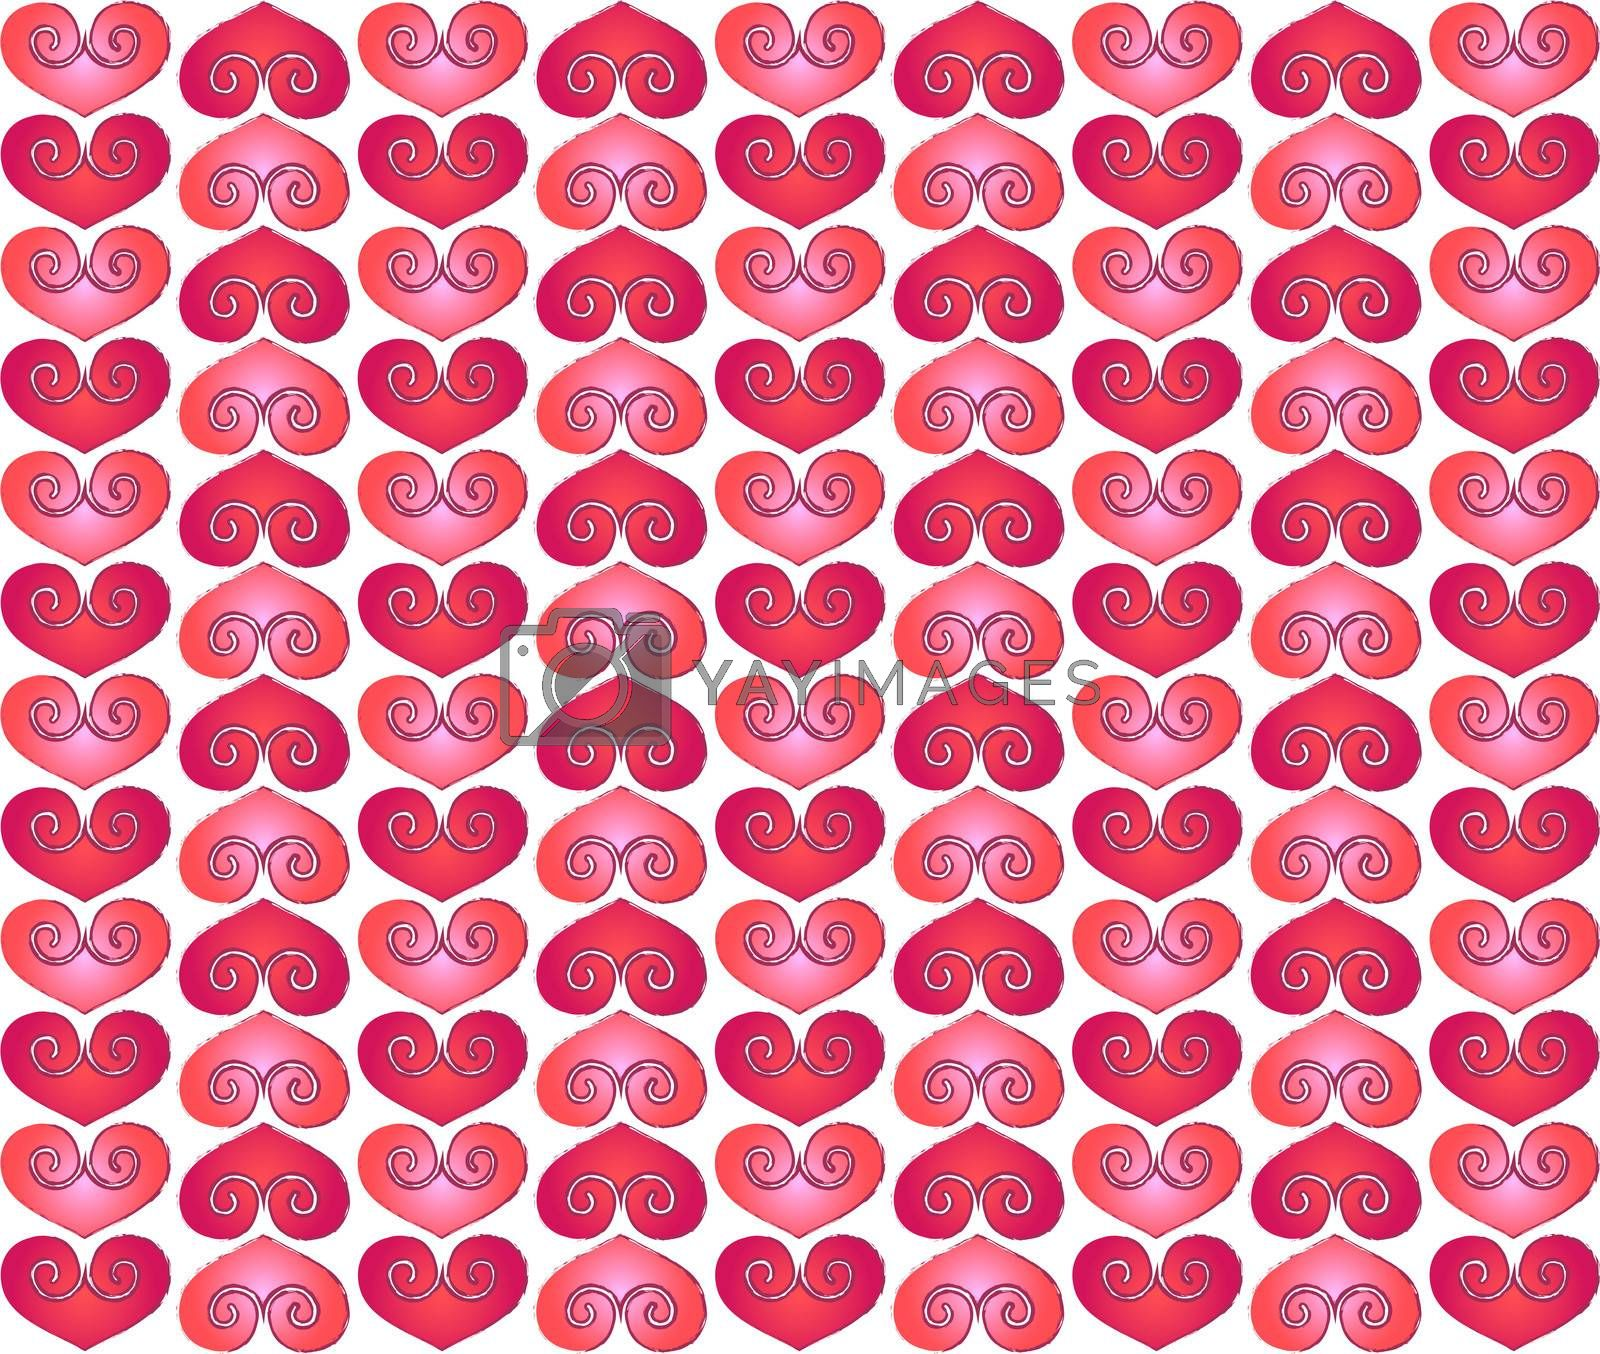 Valentine red hearts design with purple color contours